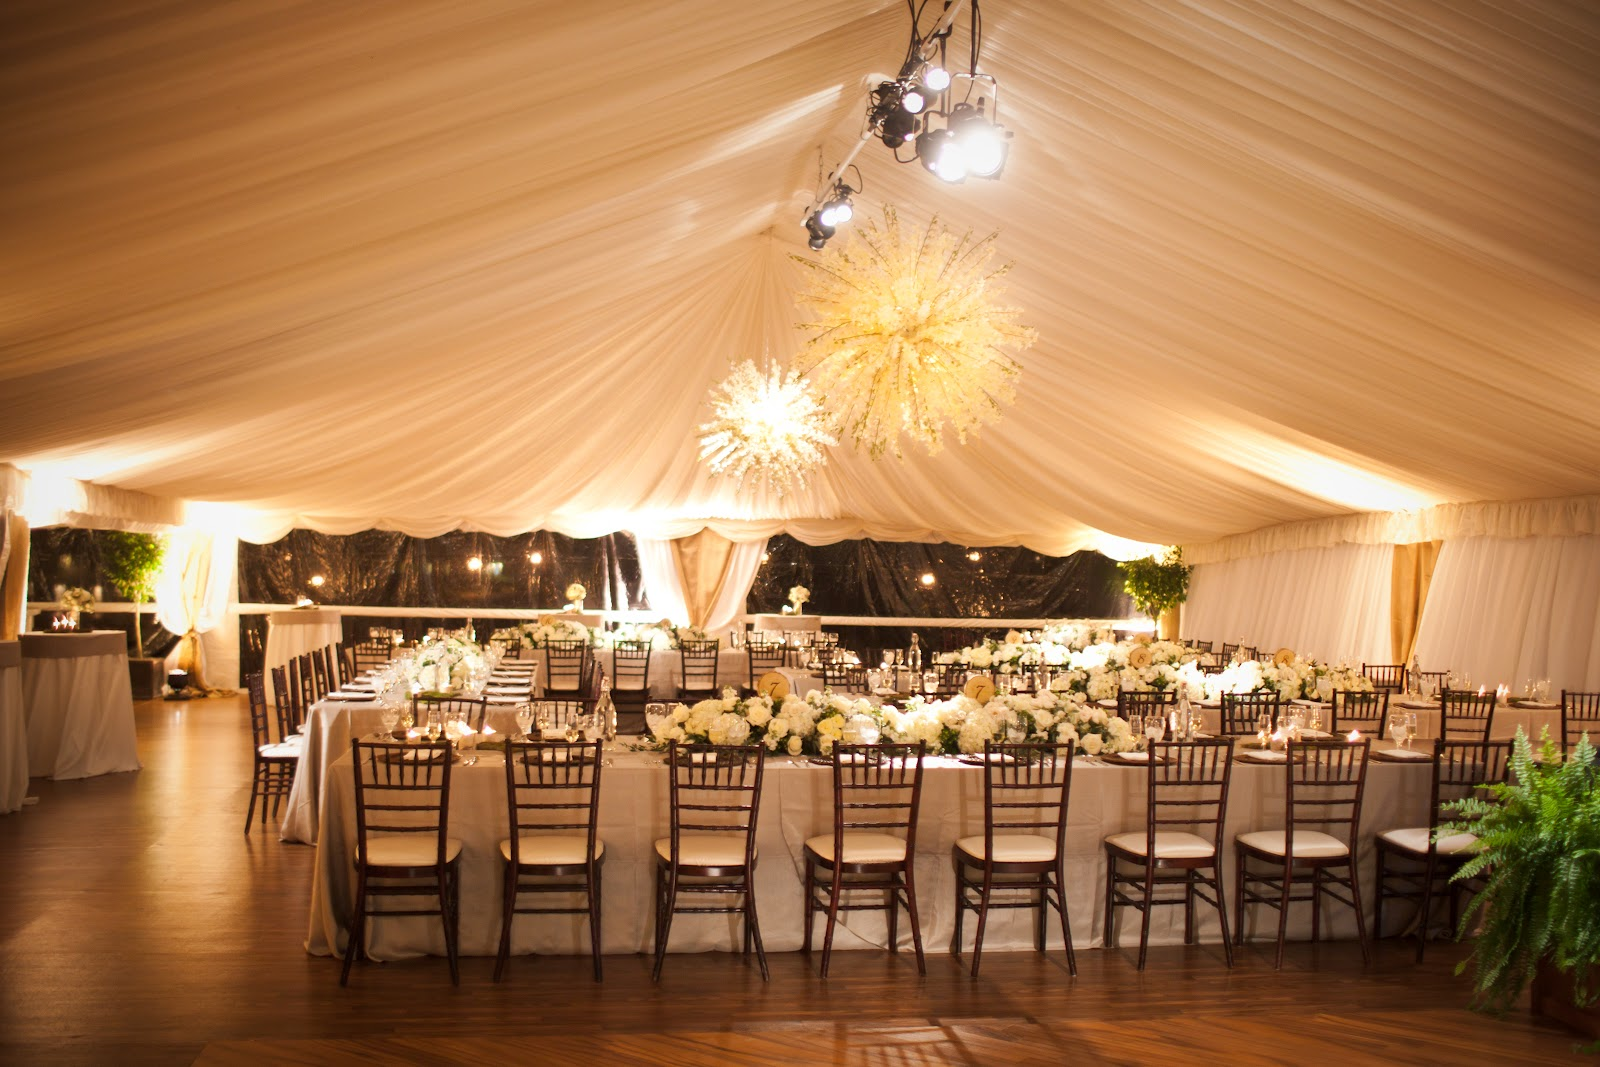 Hiring of Tents Affinity Events - Tent Hire Johannesburg & Tent Hire Johannesburg | Marquee Hire | Affinity Events